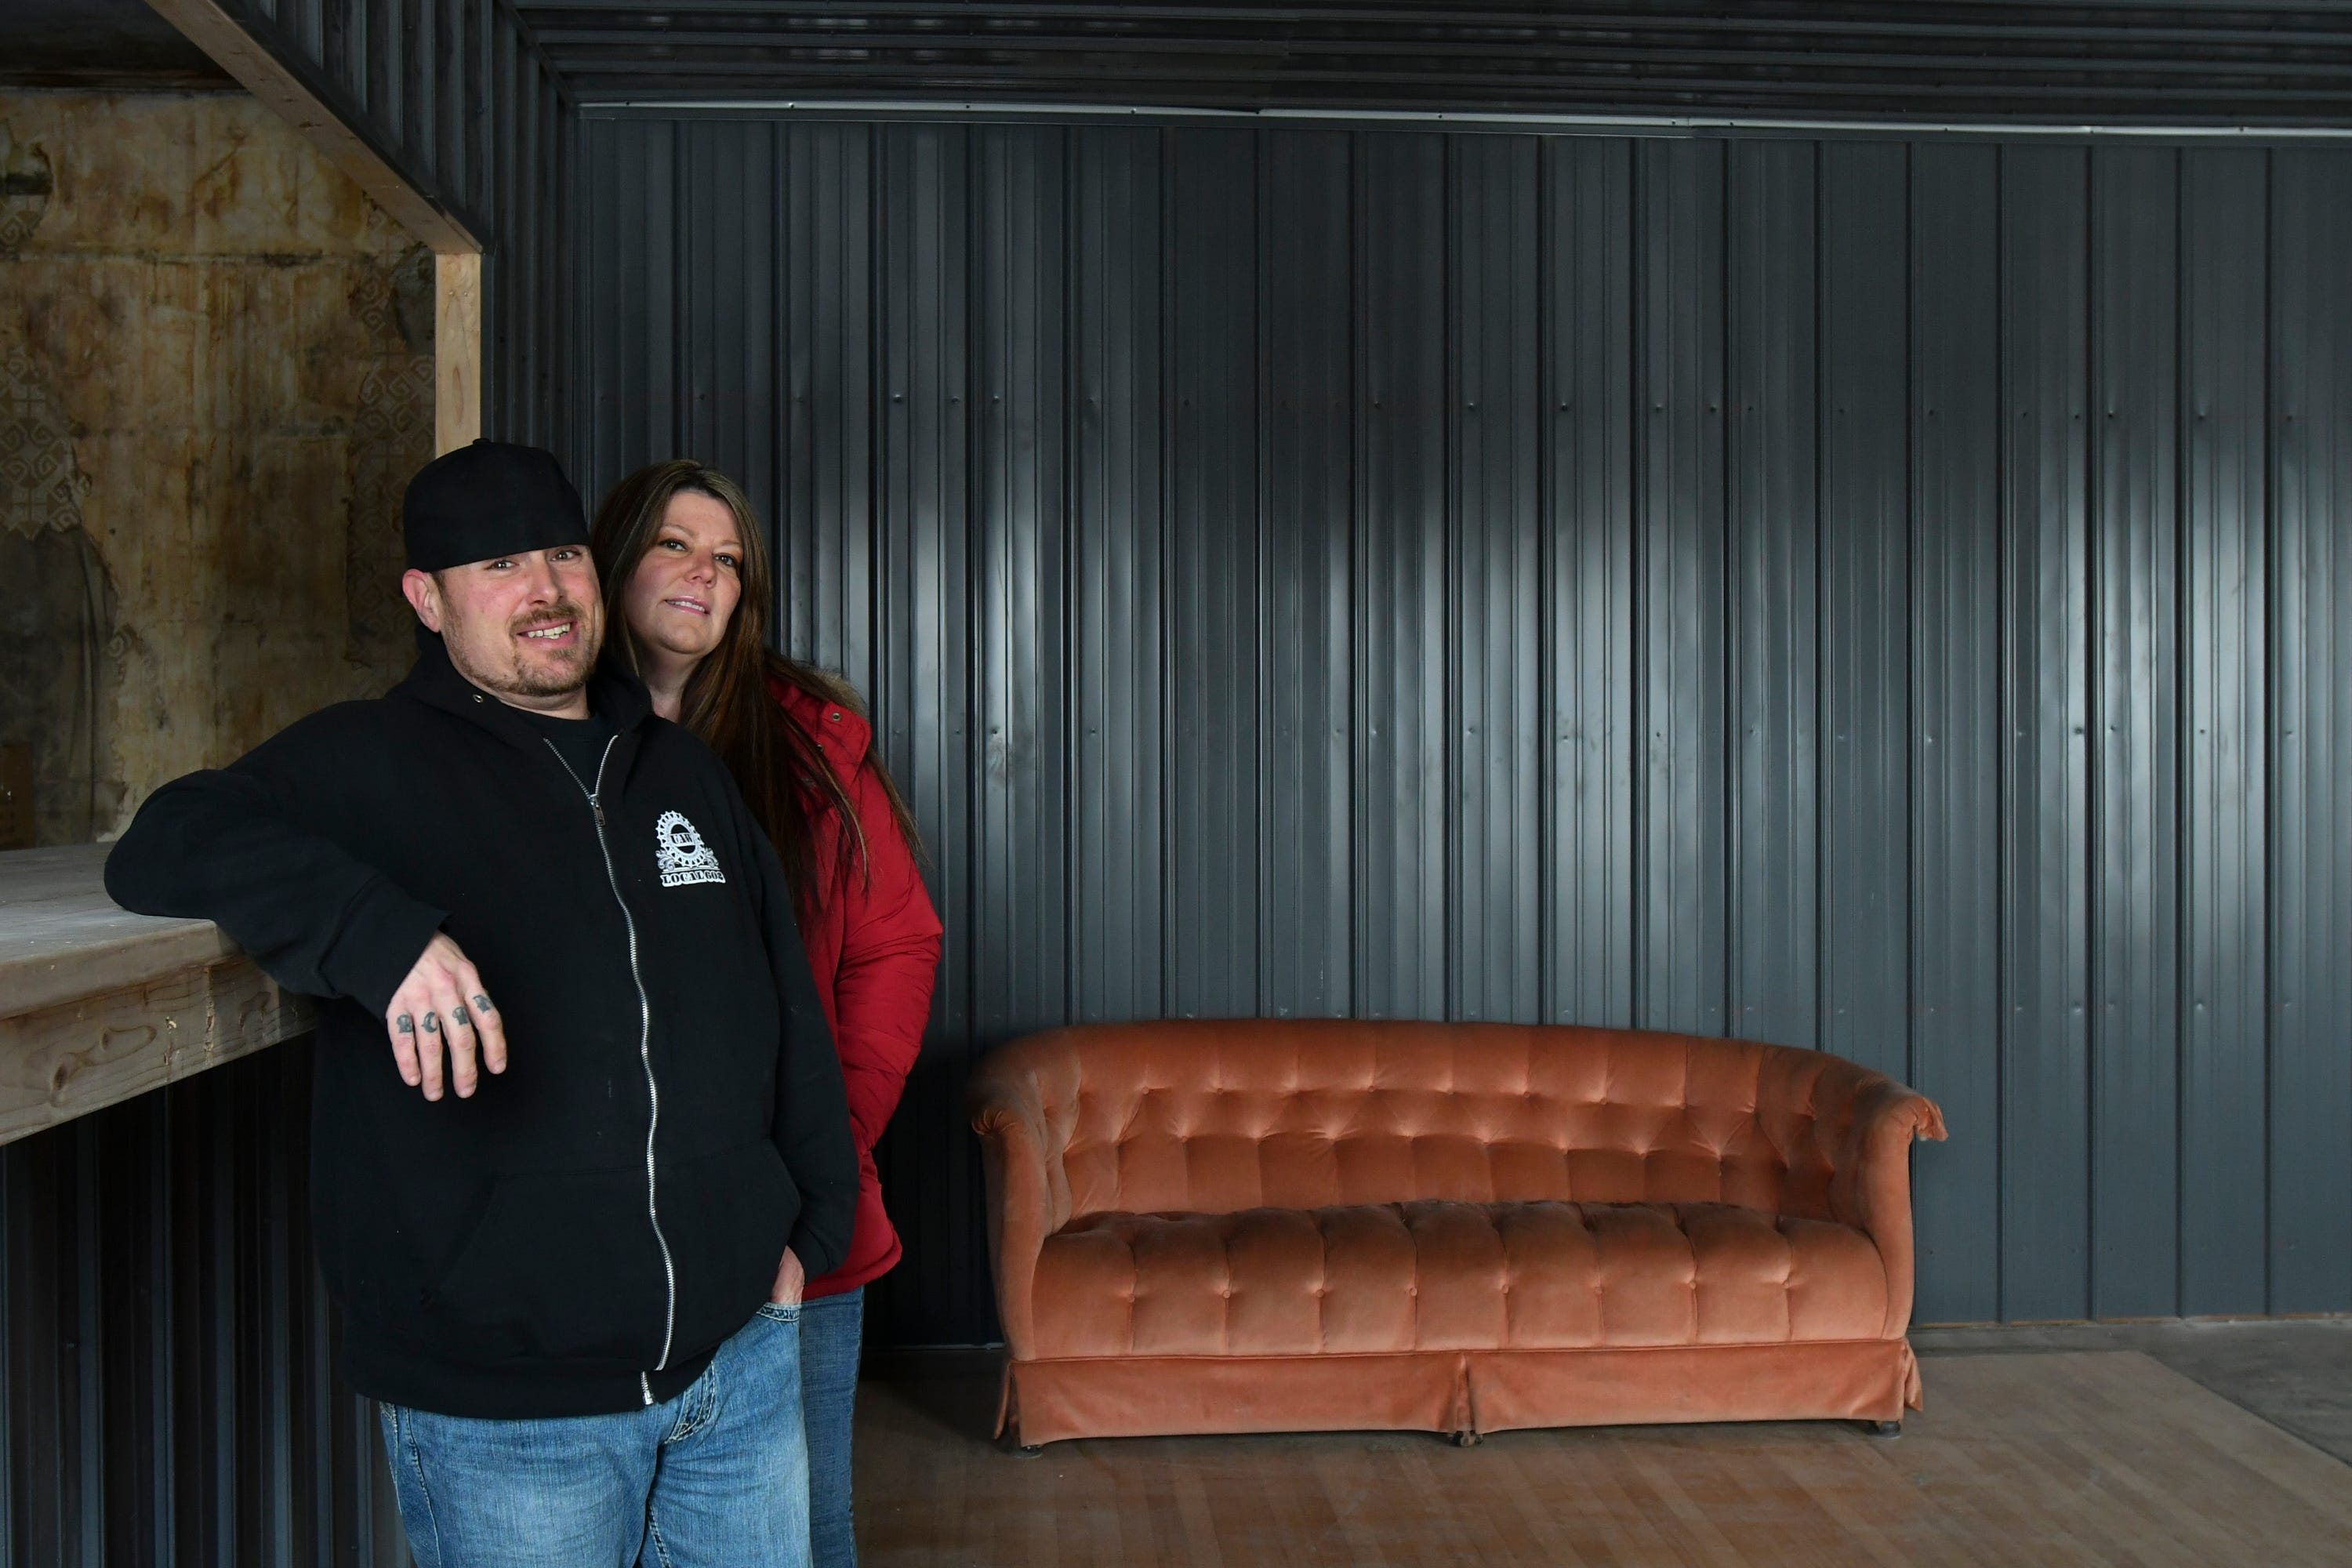 Mike Karl and Cynthia Bell are co-founders of Doobie's Tavern, a marijuana social club that opened March 2 in downtown Elsie. Doobie's occupies a the second floor of a privately-owned two-story building.